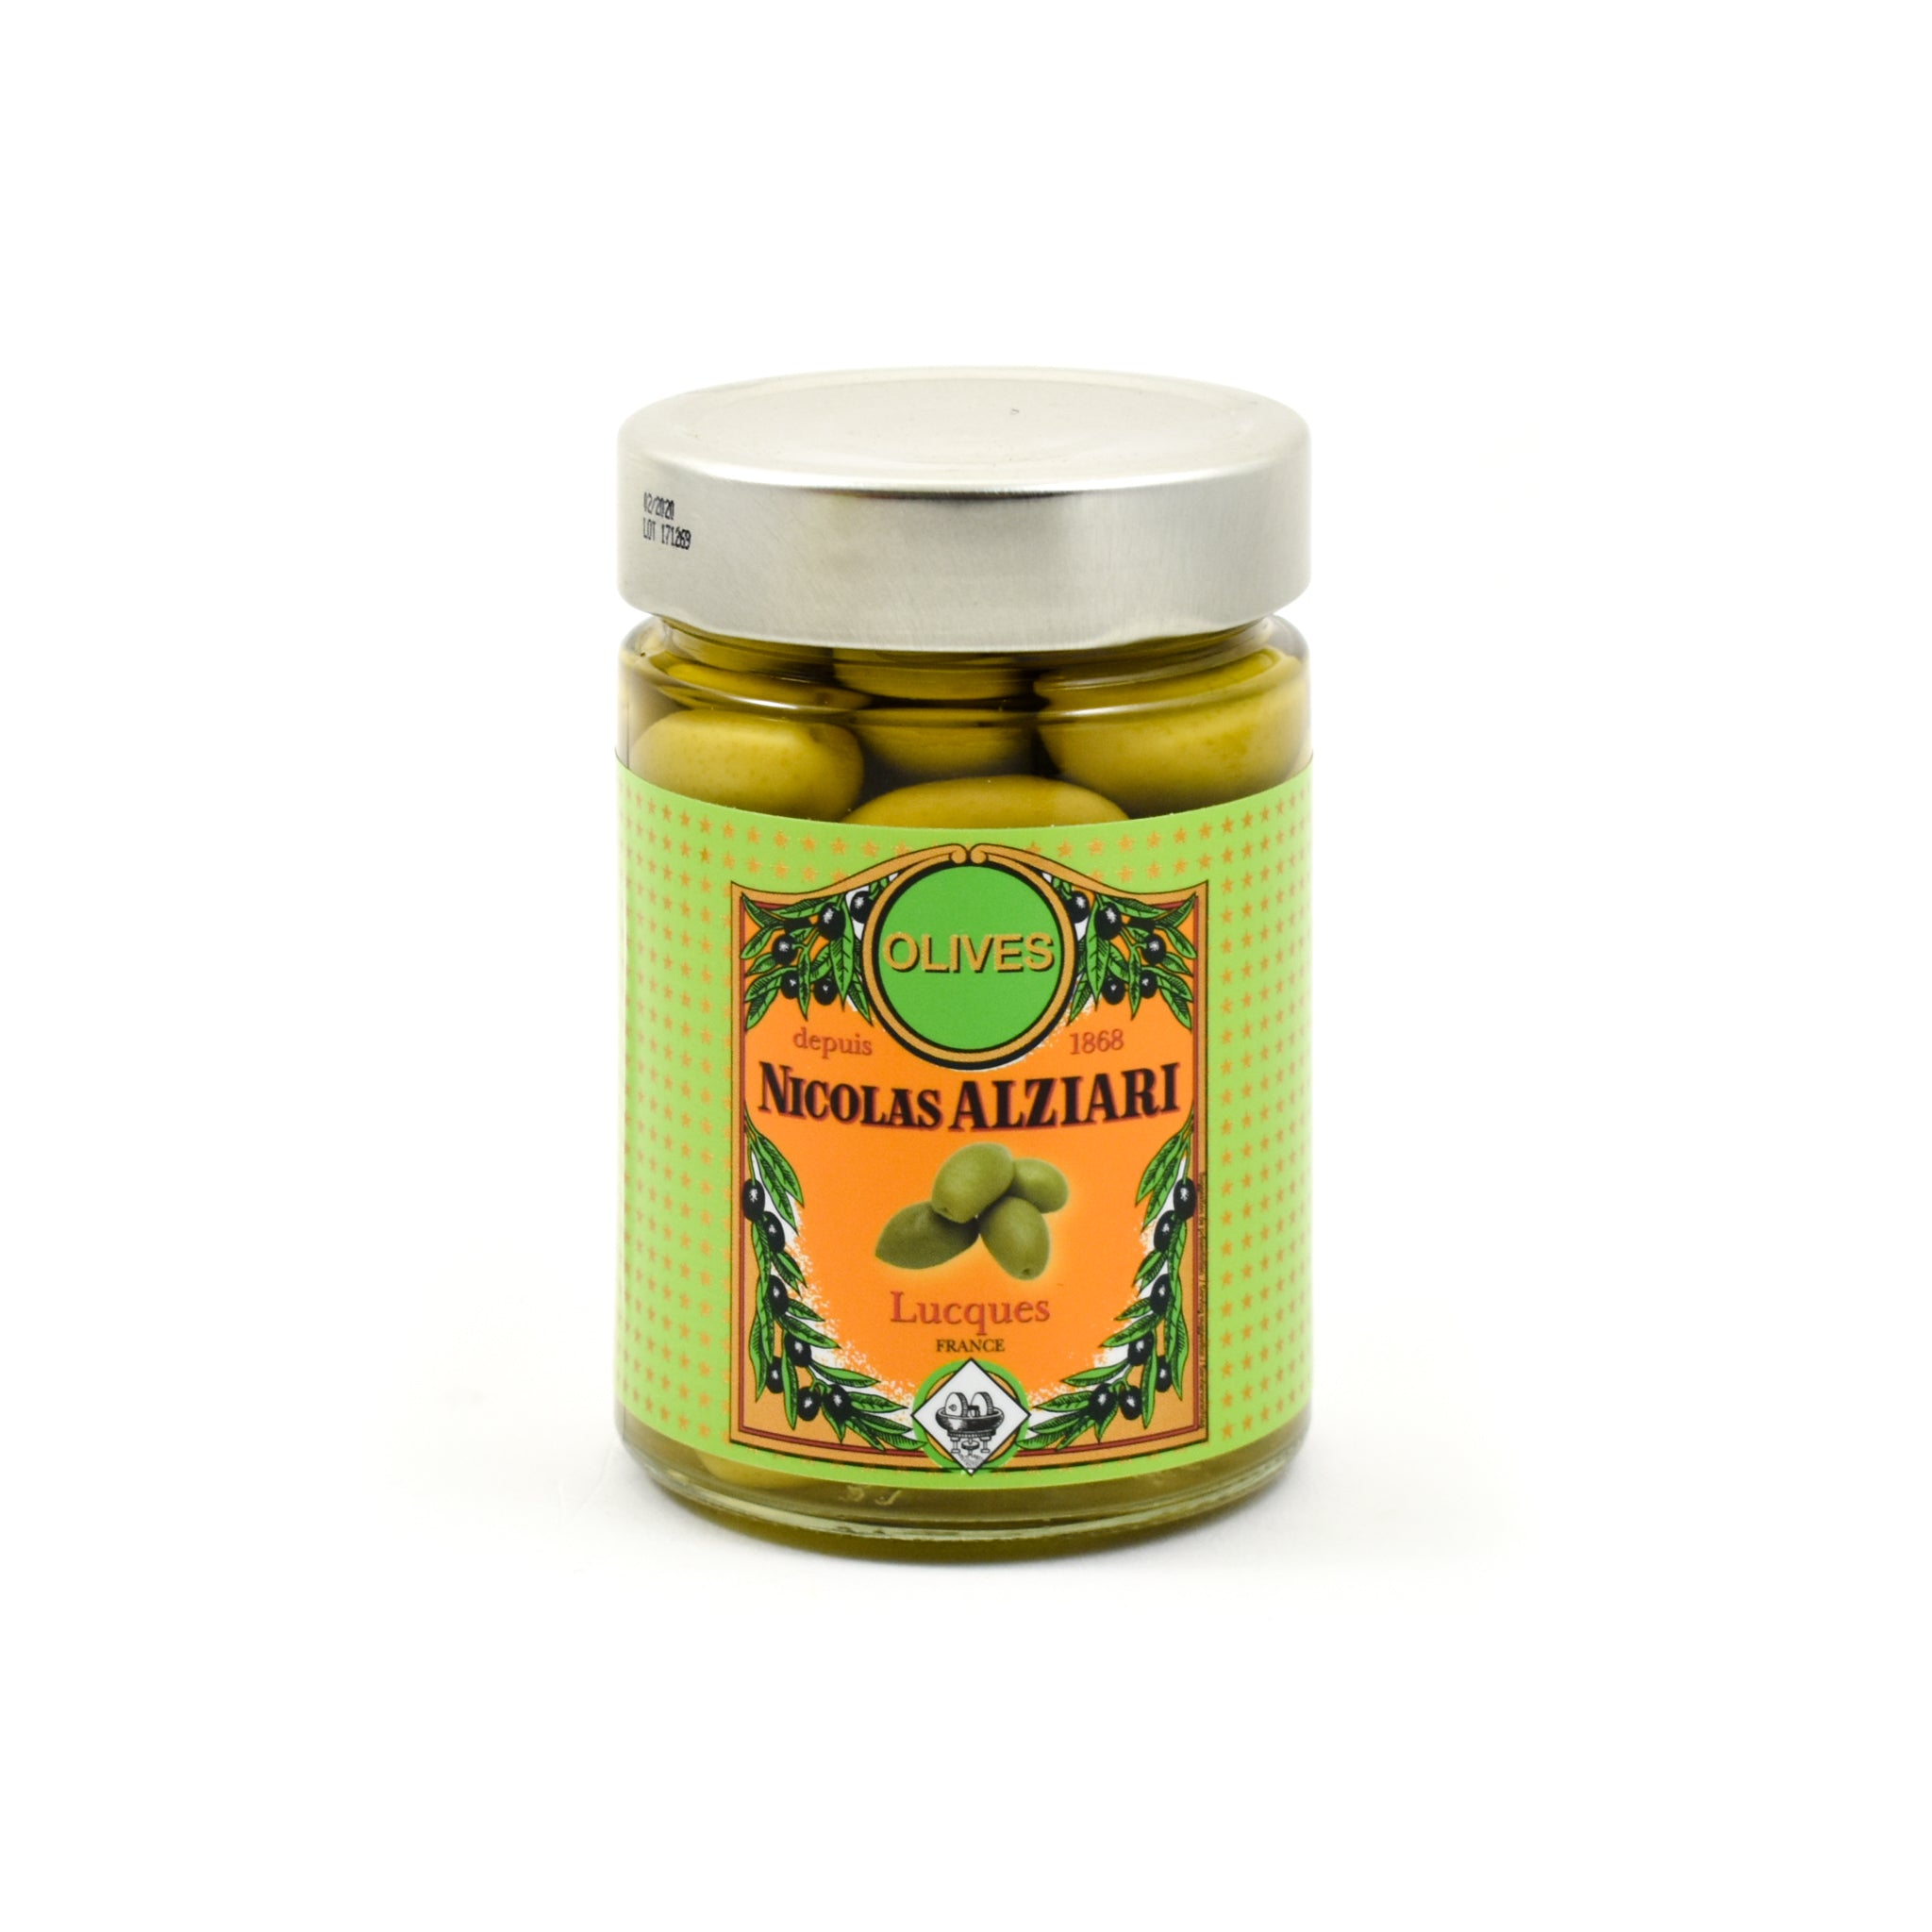 Nicolas Alziari Green Lucques Olives 220g Ingredients Savoury Snacks & Crackers French Food